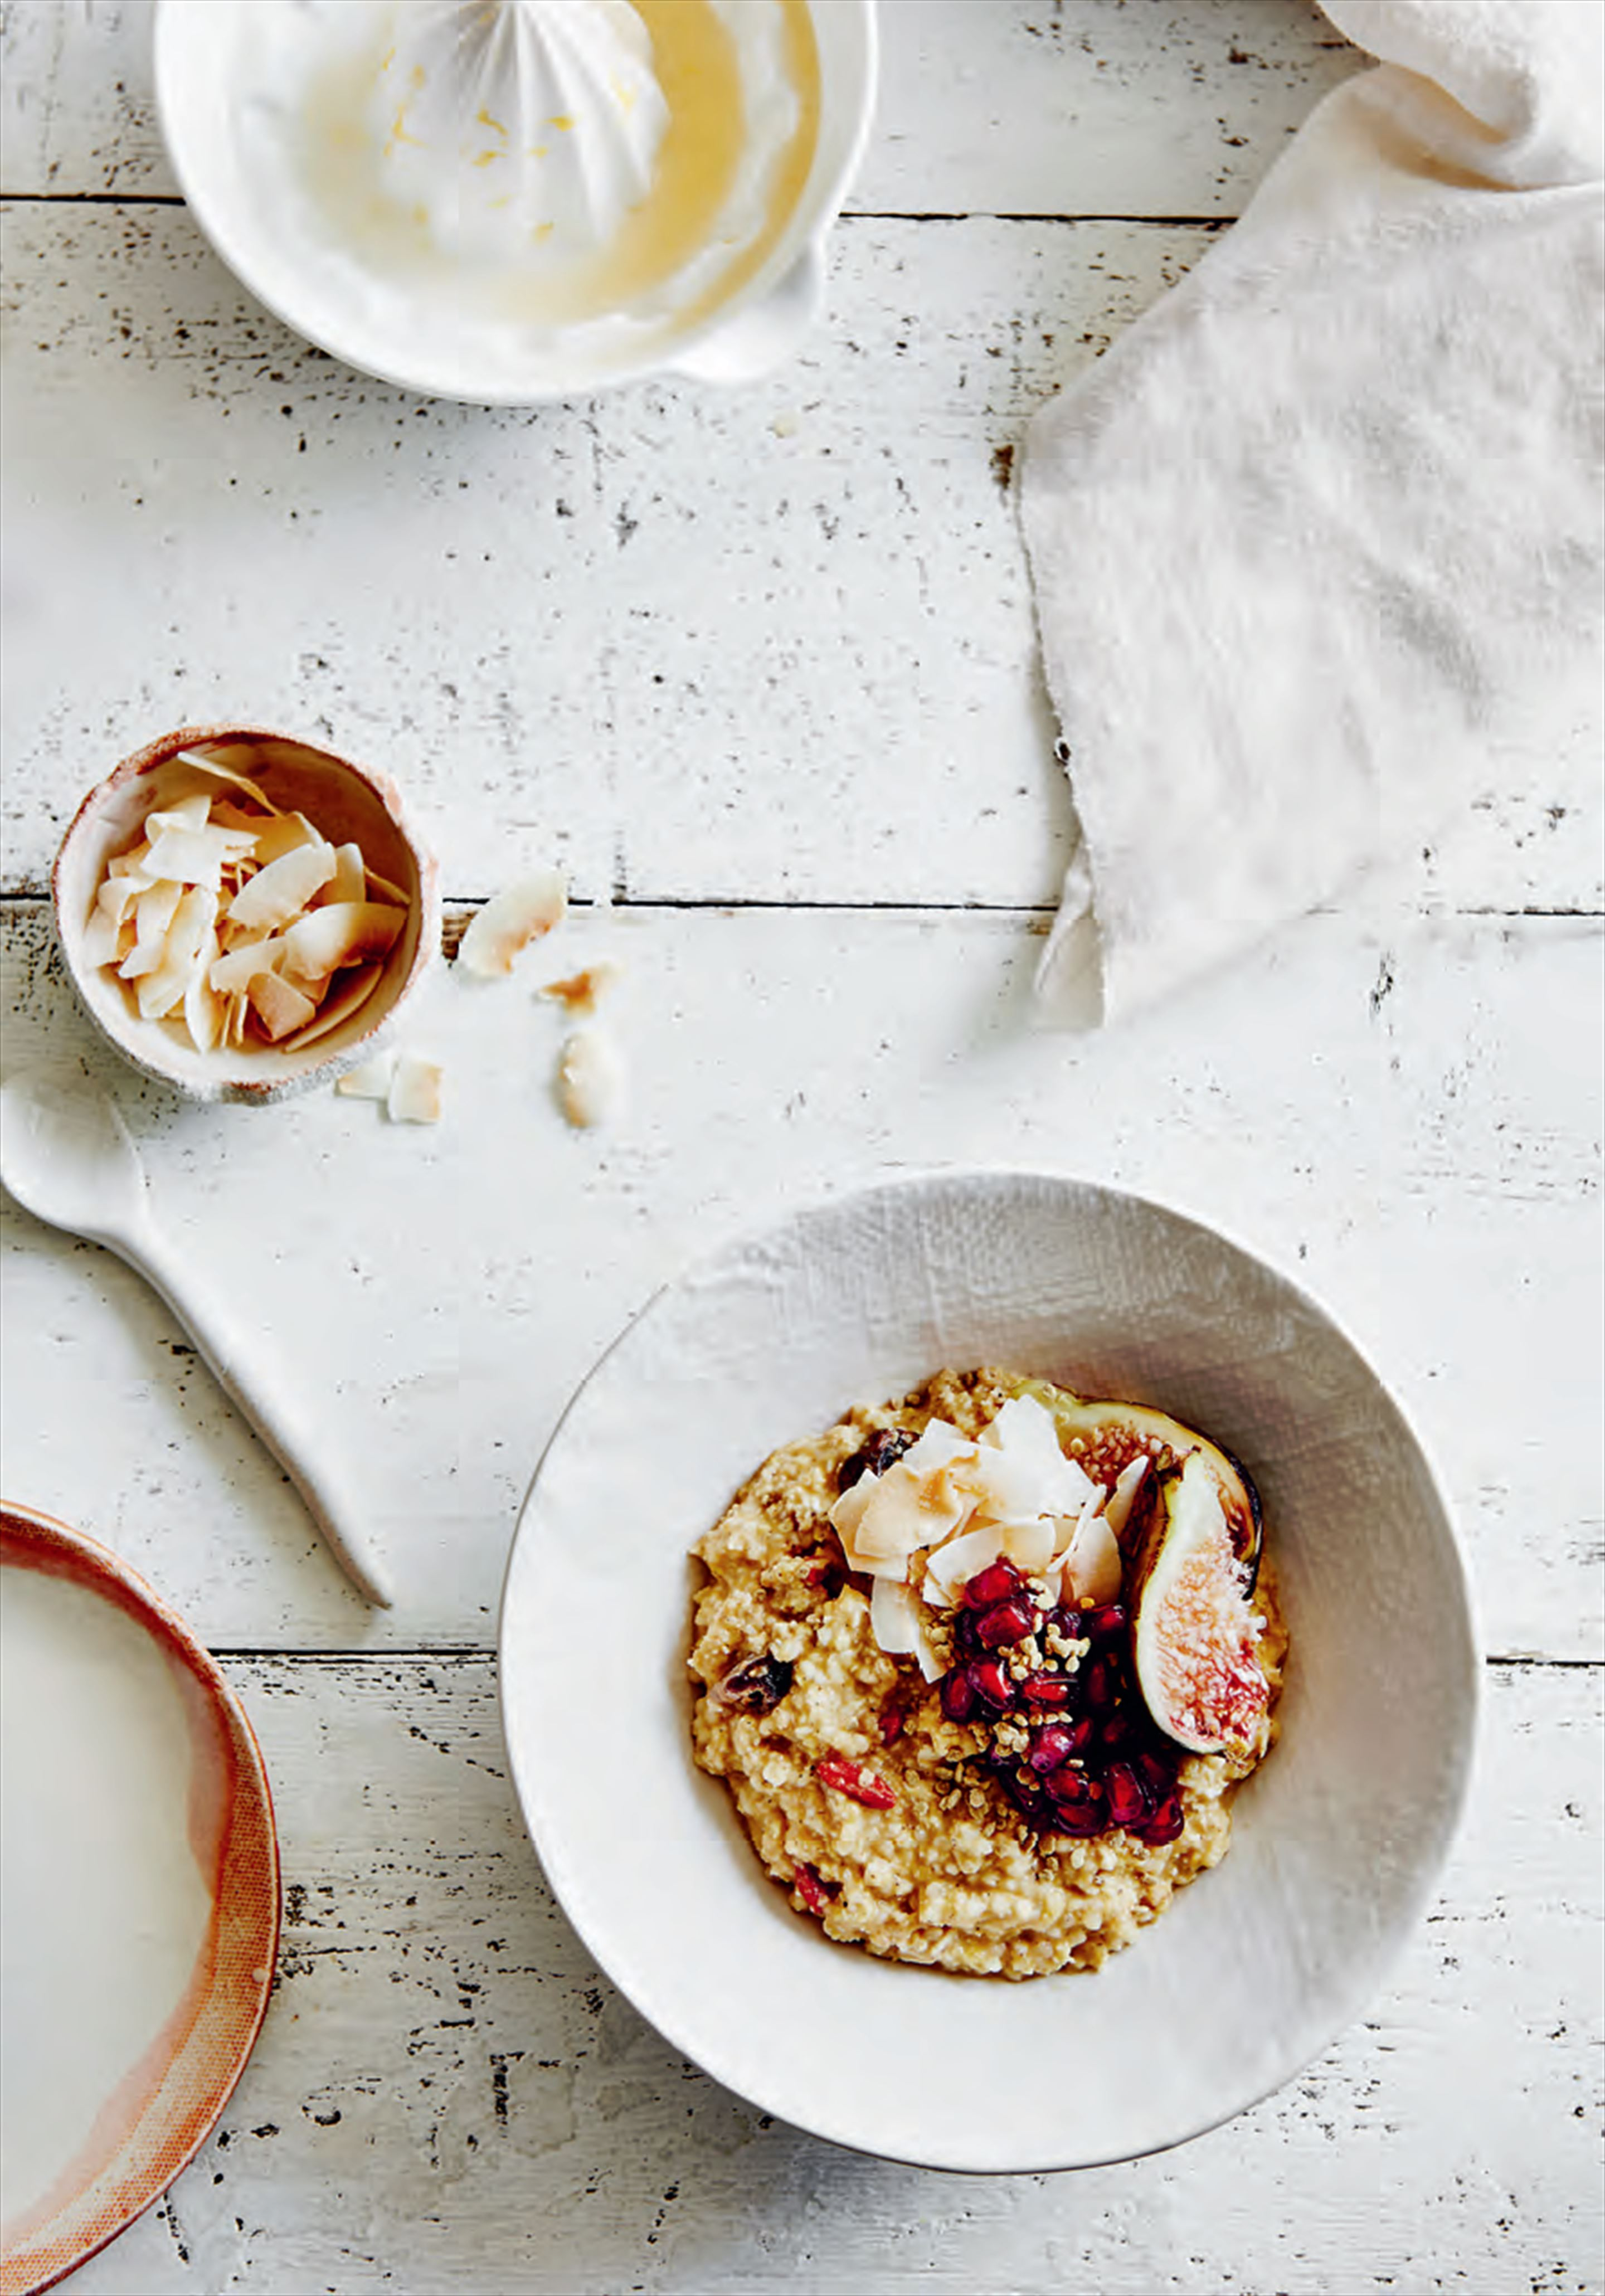 Orange & fig quinoa breakfast bowls